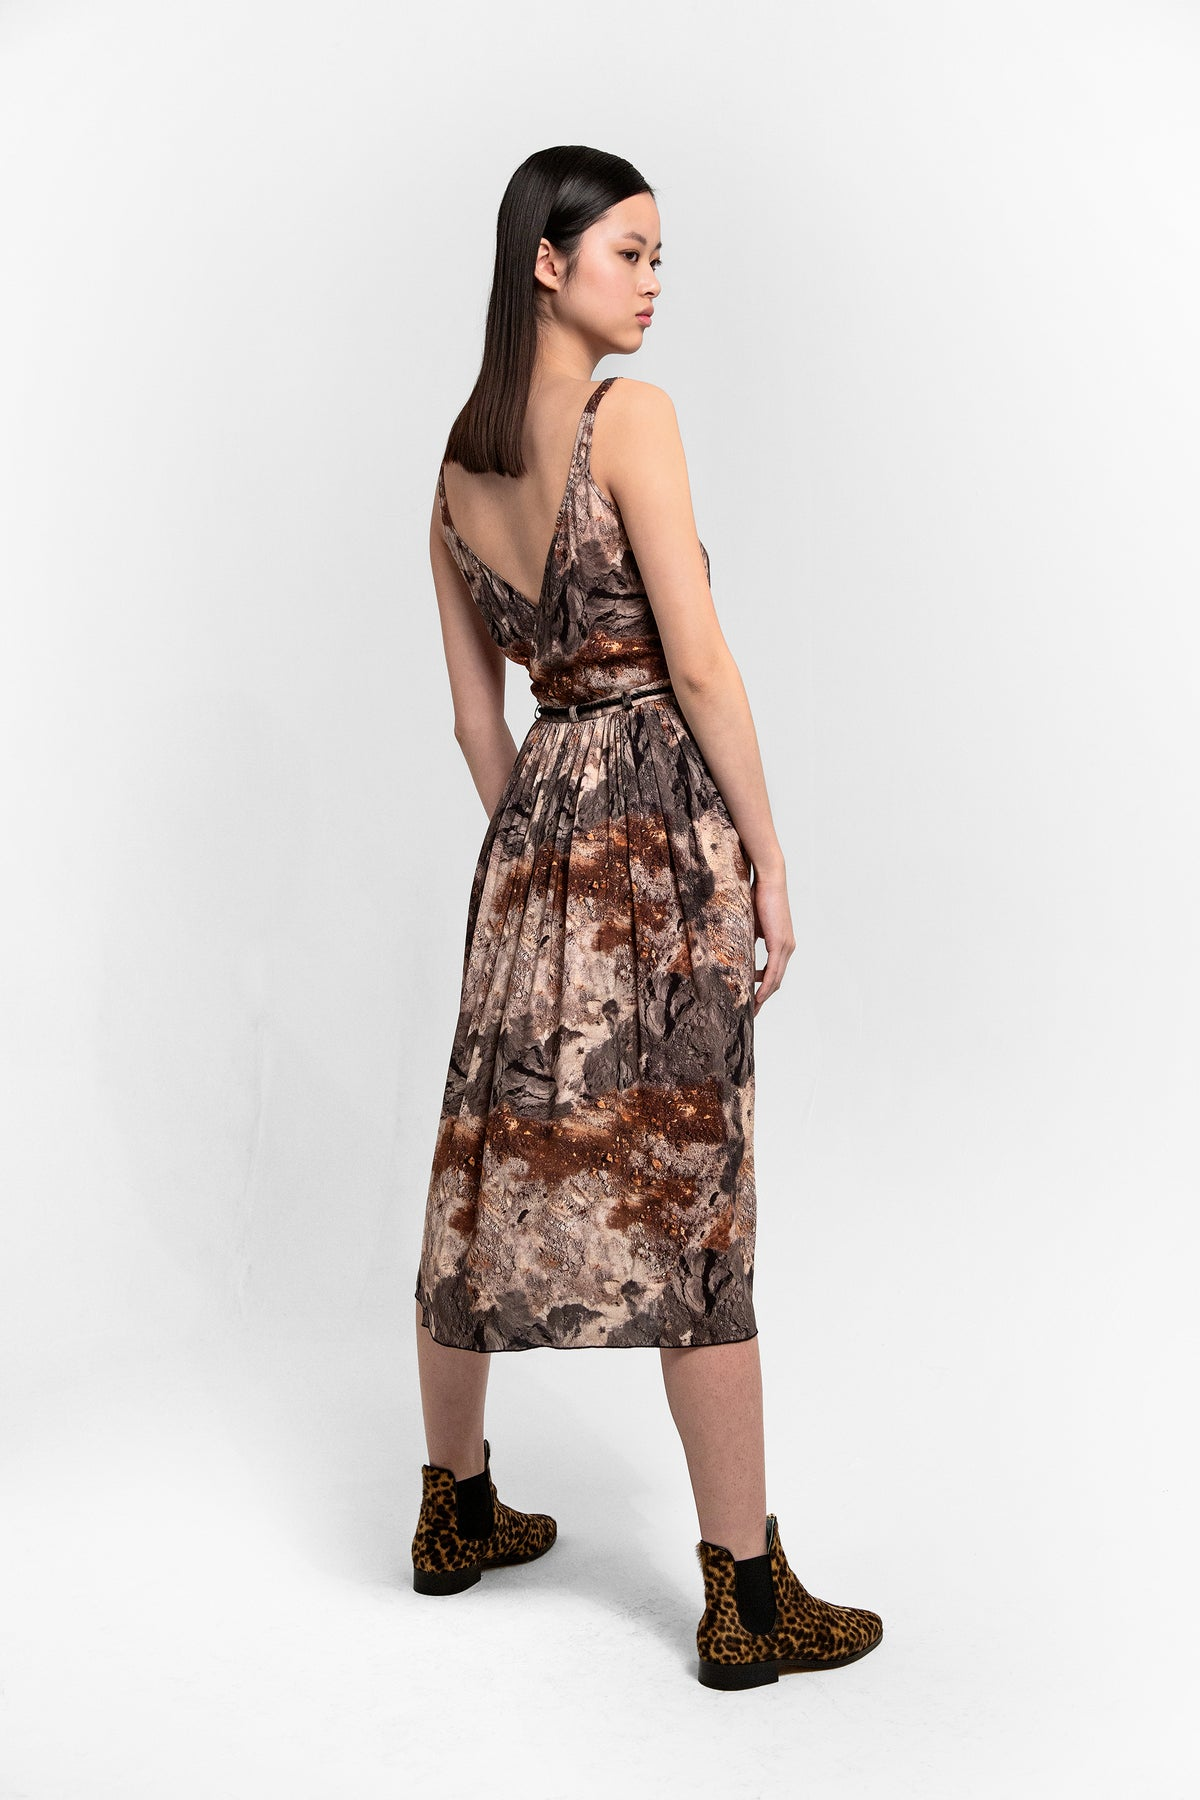 Orso dress in concrete print